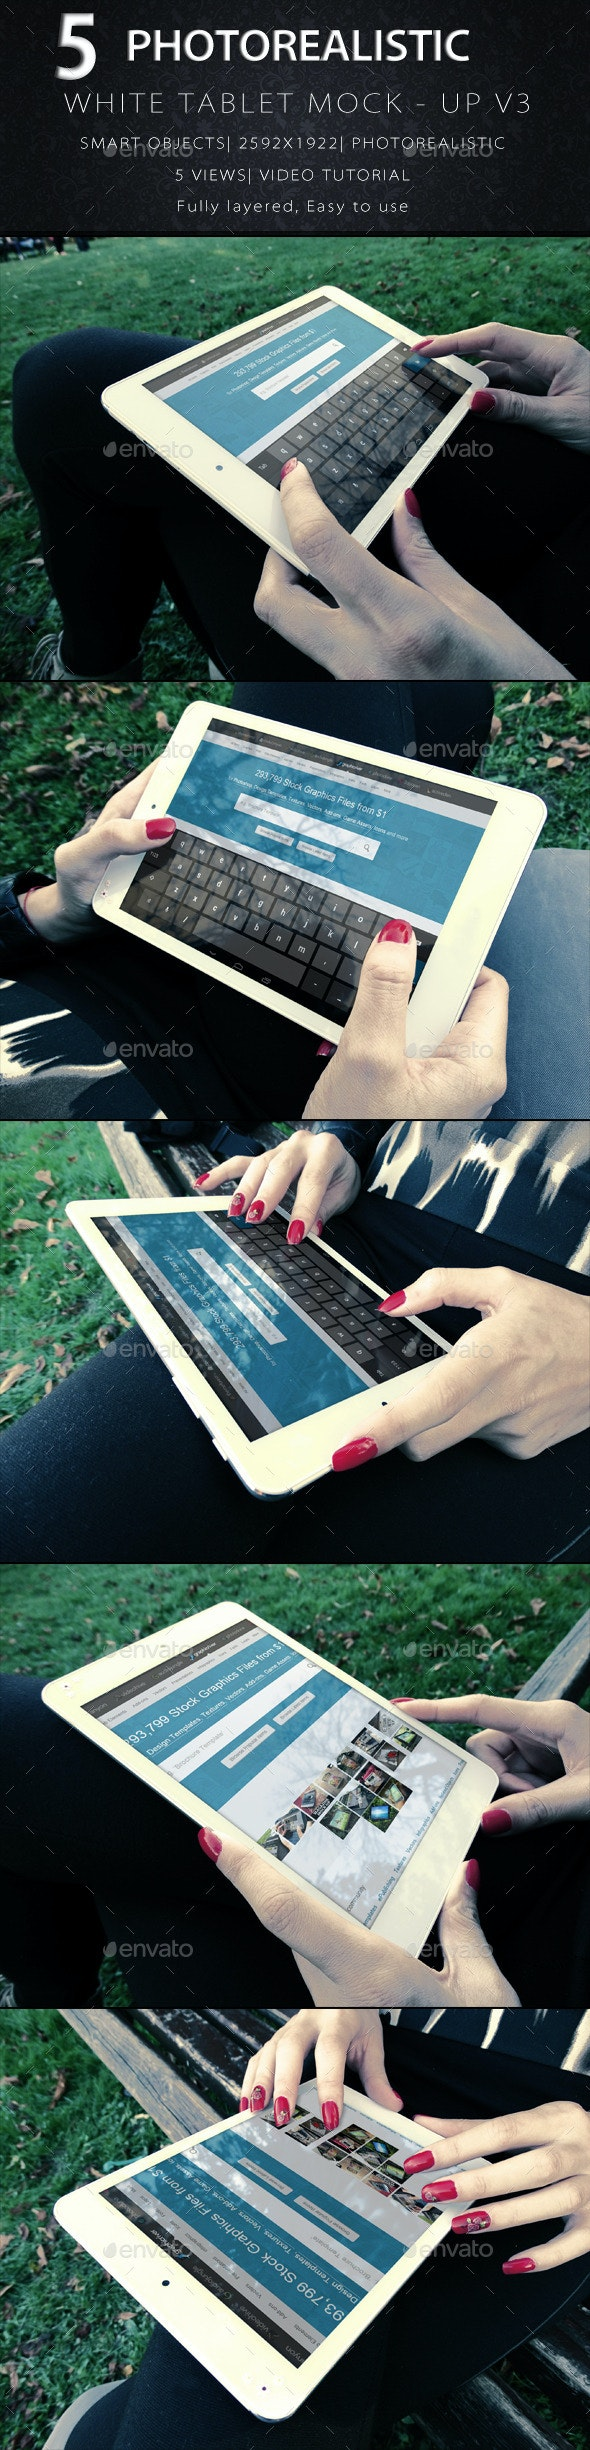 Photorealistic Tablet With Female Hands Mock-Up V3 - Product Mock-Ups Graphics